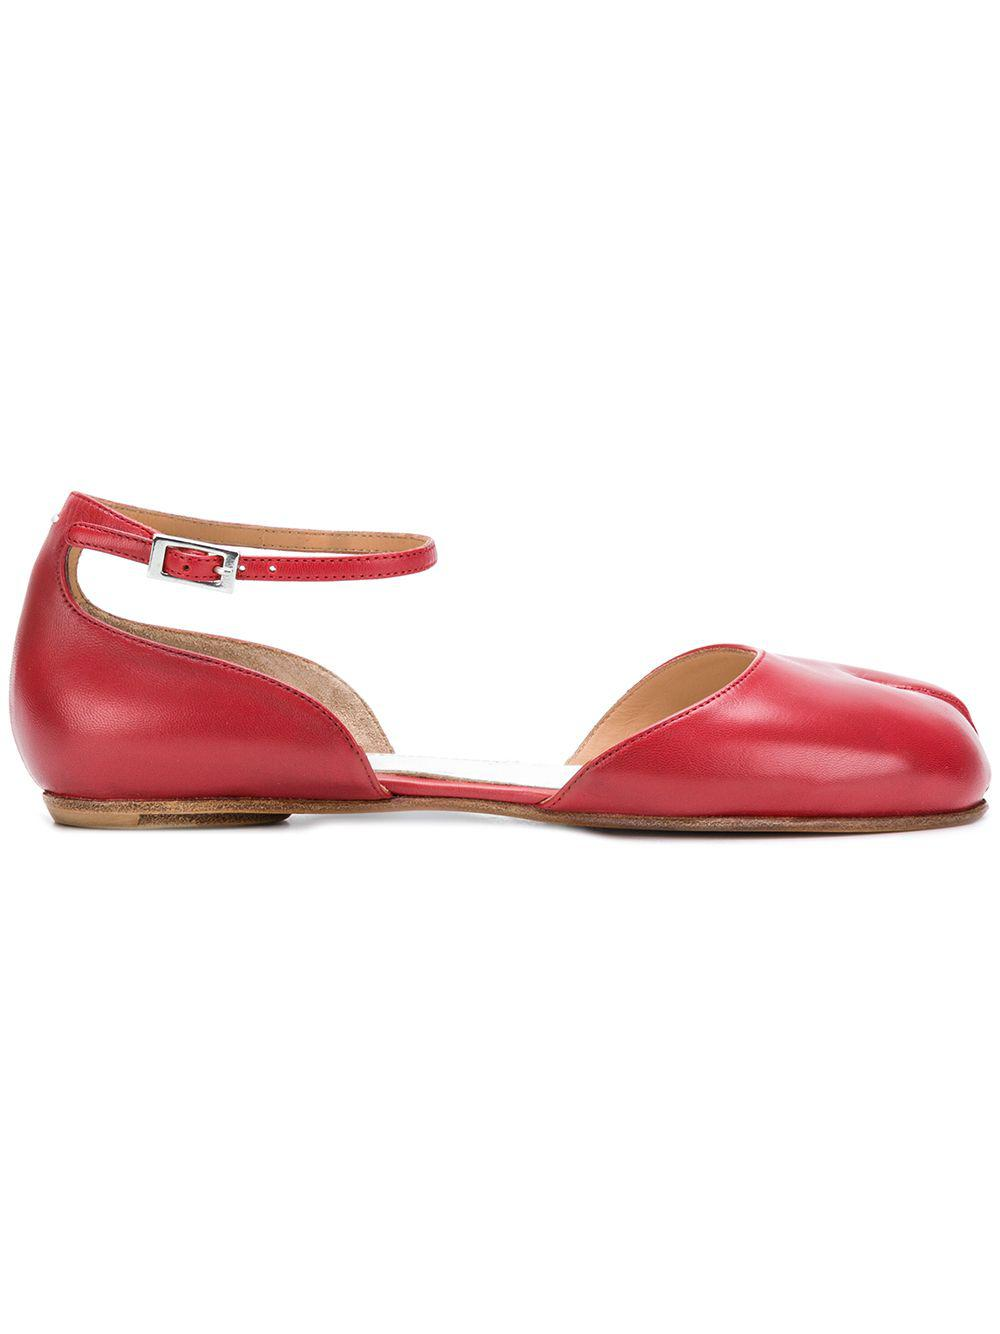 9780a25b28af60 maison-martin-margiela-Red-Ankle-Strap-Ballerina-Tabi-Shoes.jpeg